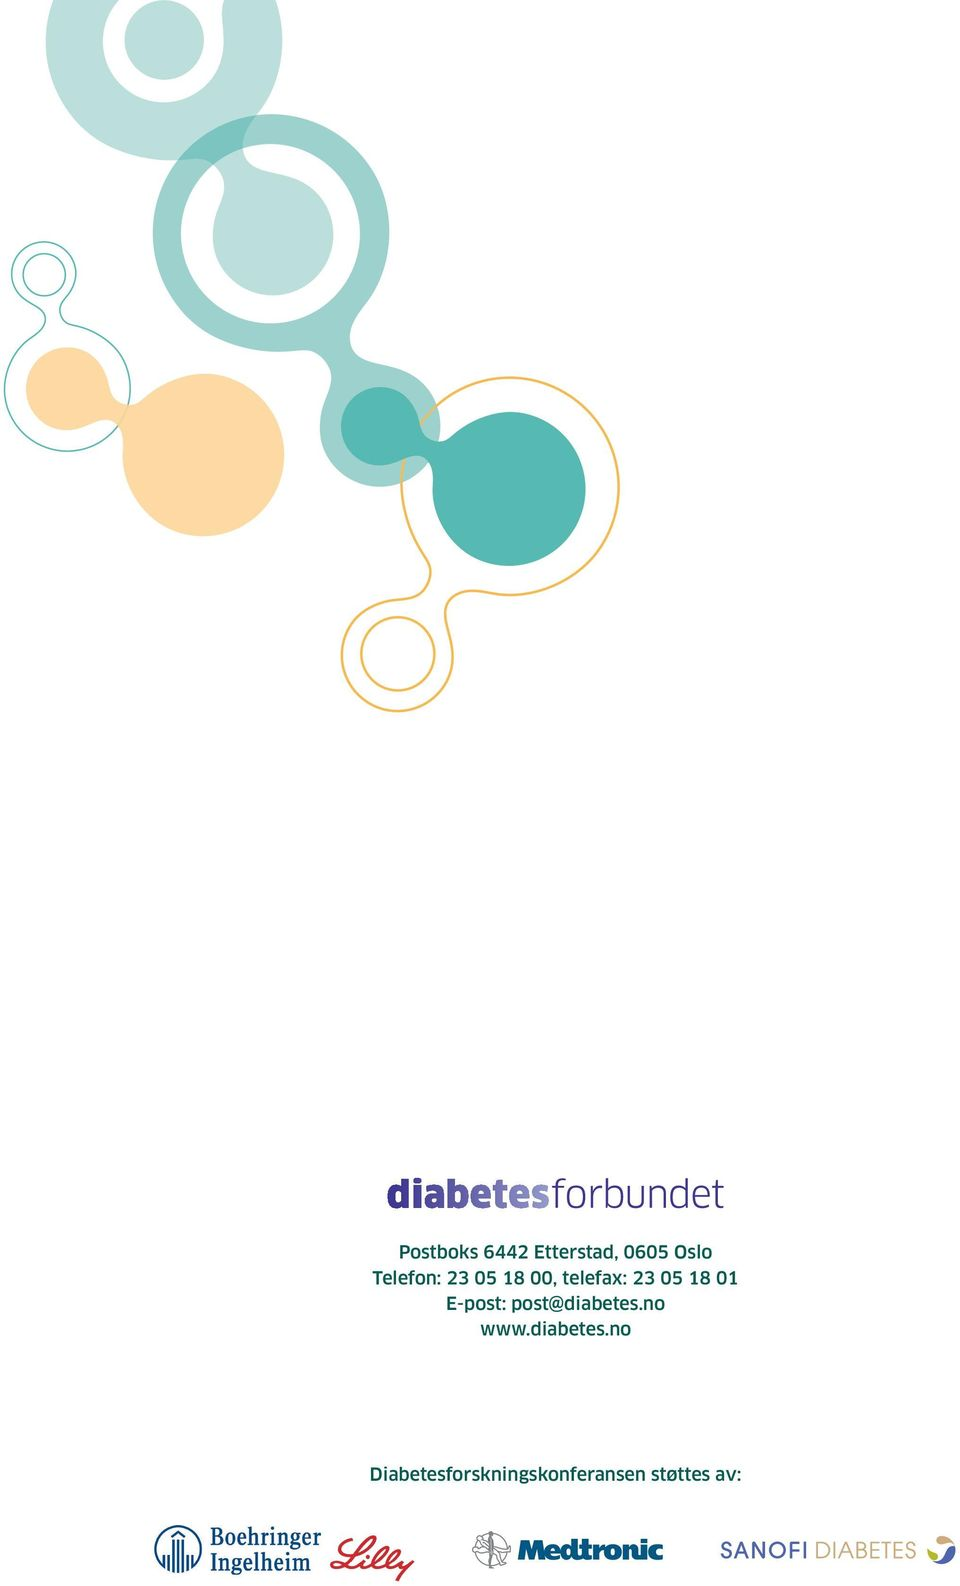 01 E-post: post@diabetes.no www.